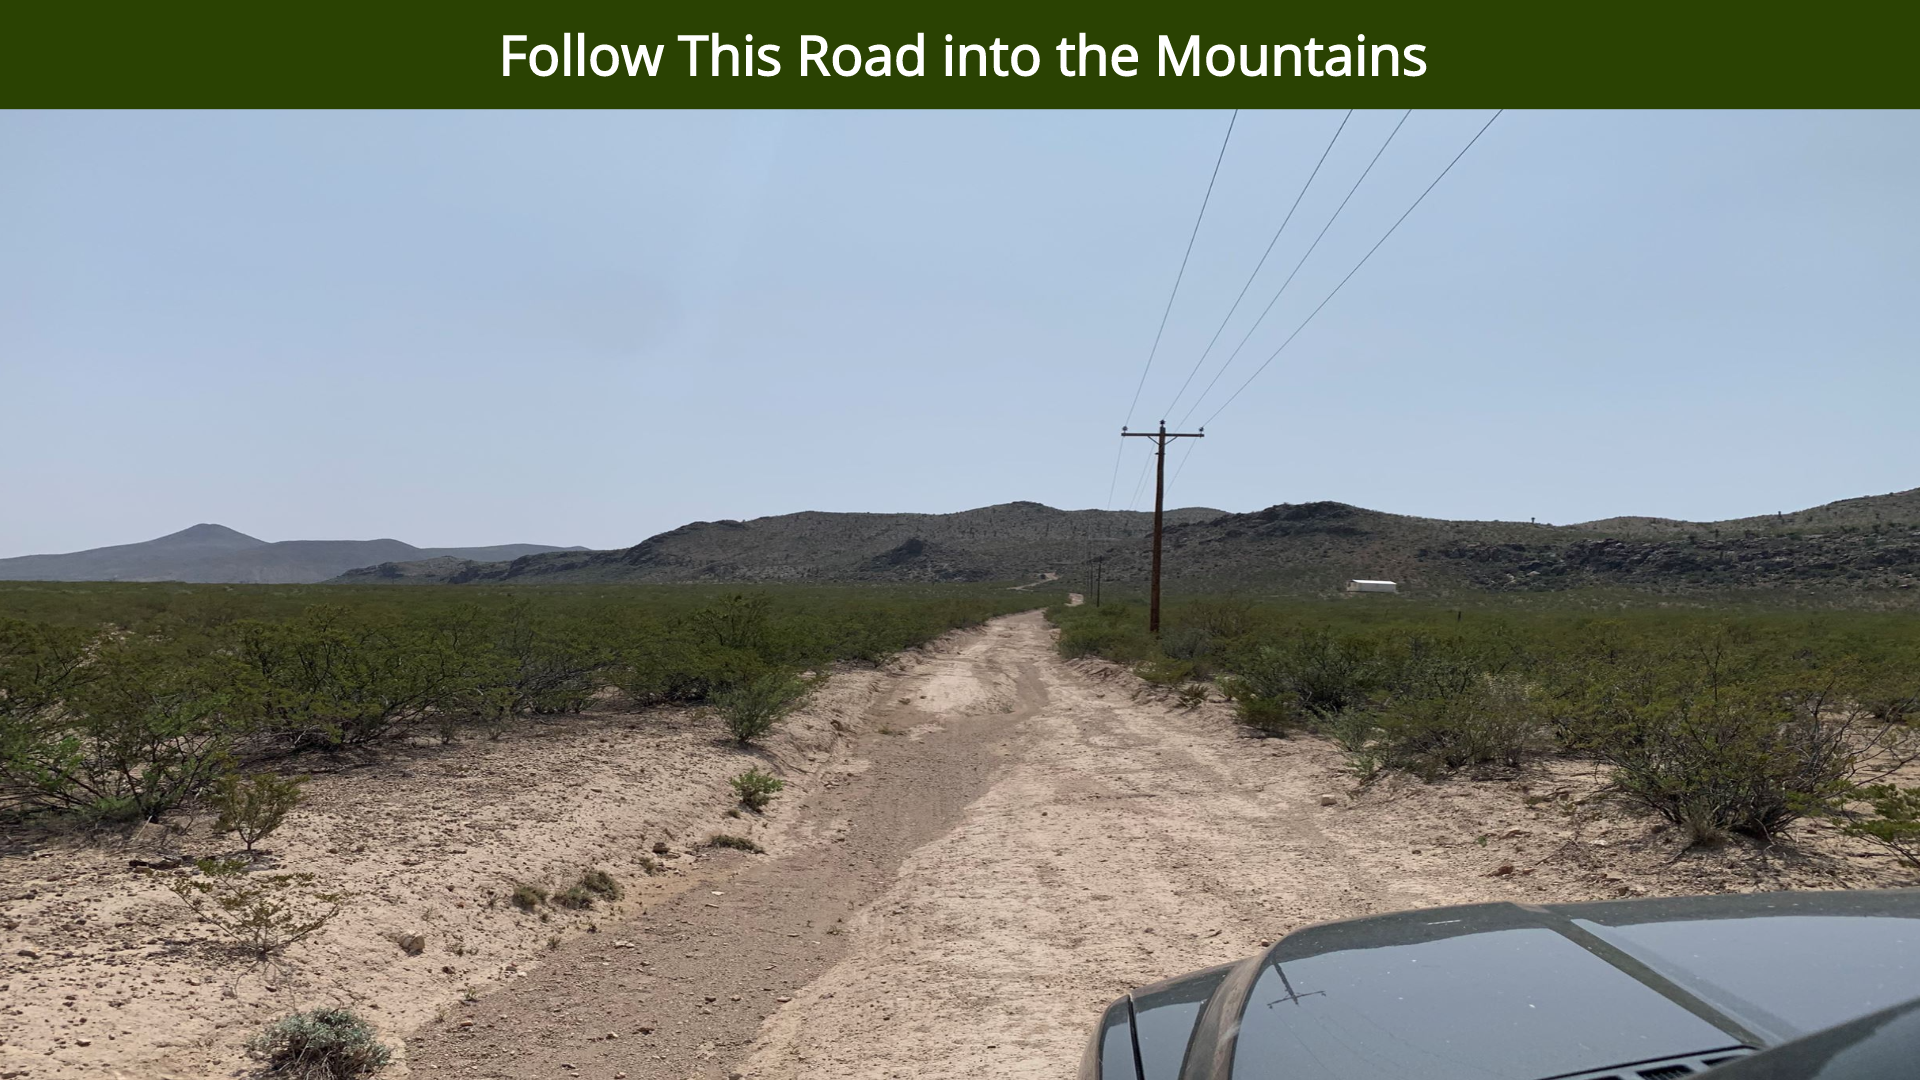 Follow This Road into the Mountains